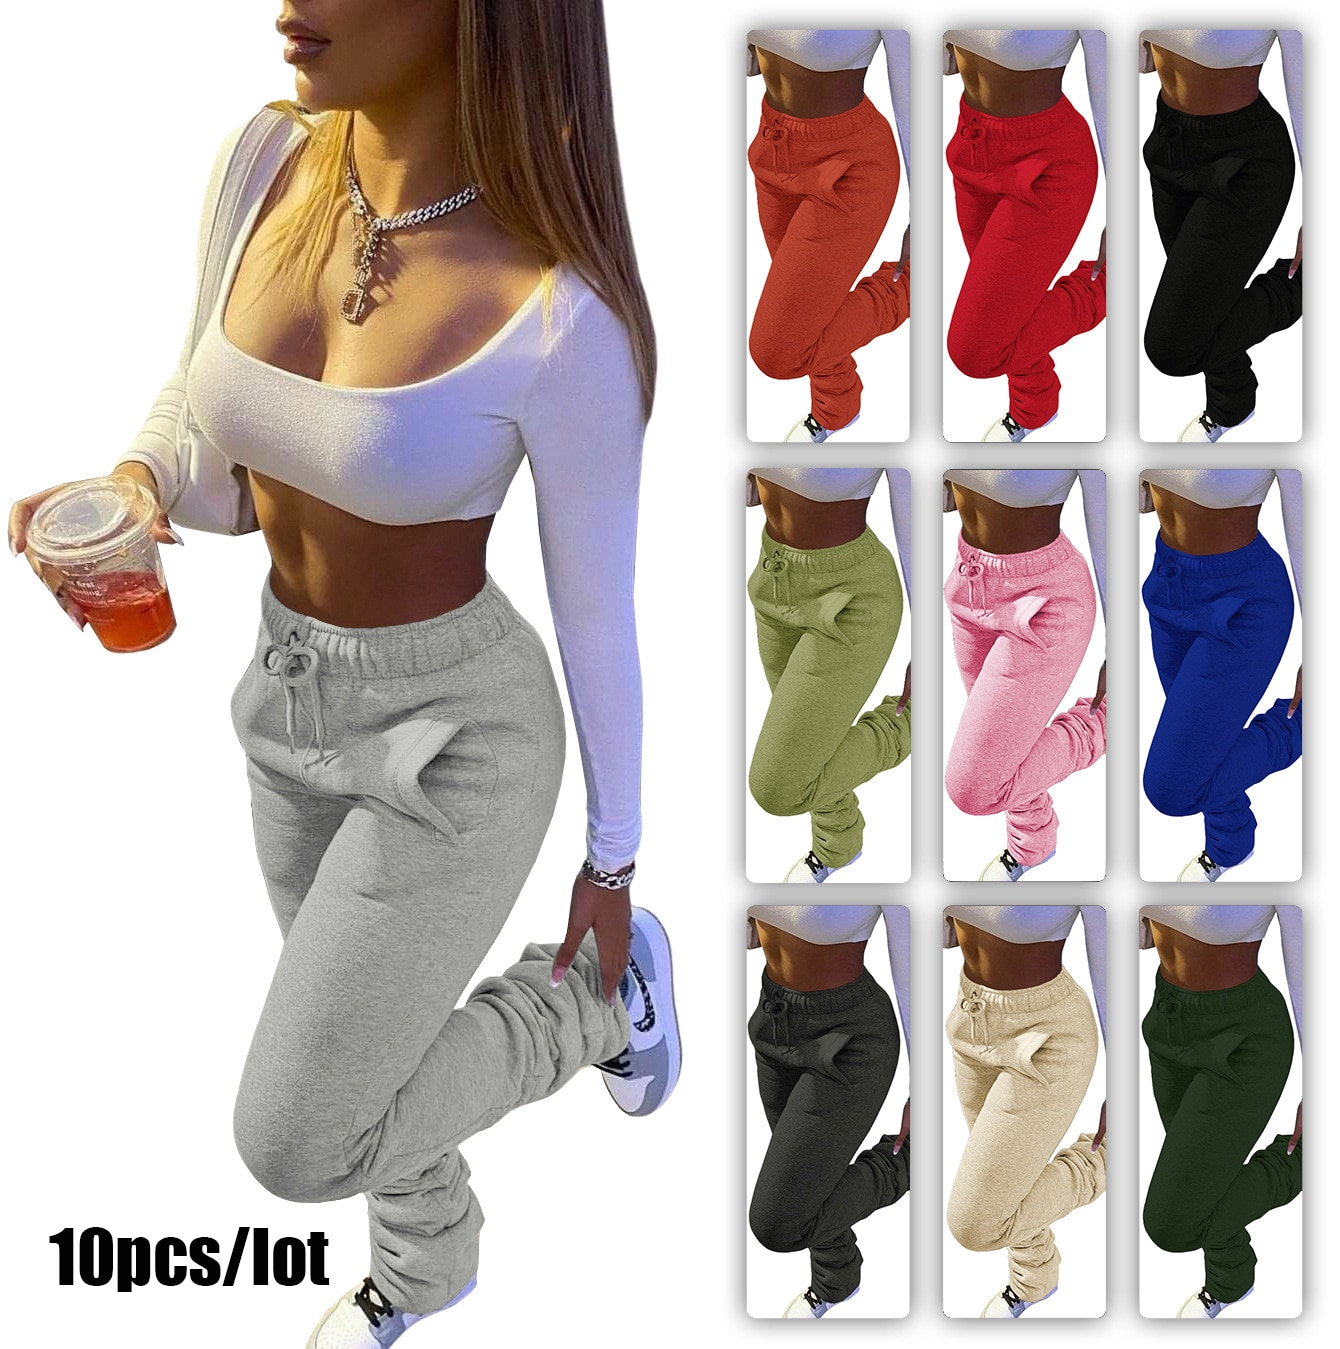 10pcs/lot Stacked Sweatpants Women Wear Thickened Clothing Sports Jogger Draw Rope Pile Pants Female Bulk Item In Wholesale Lots